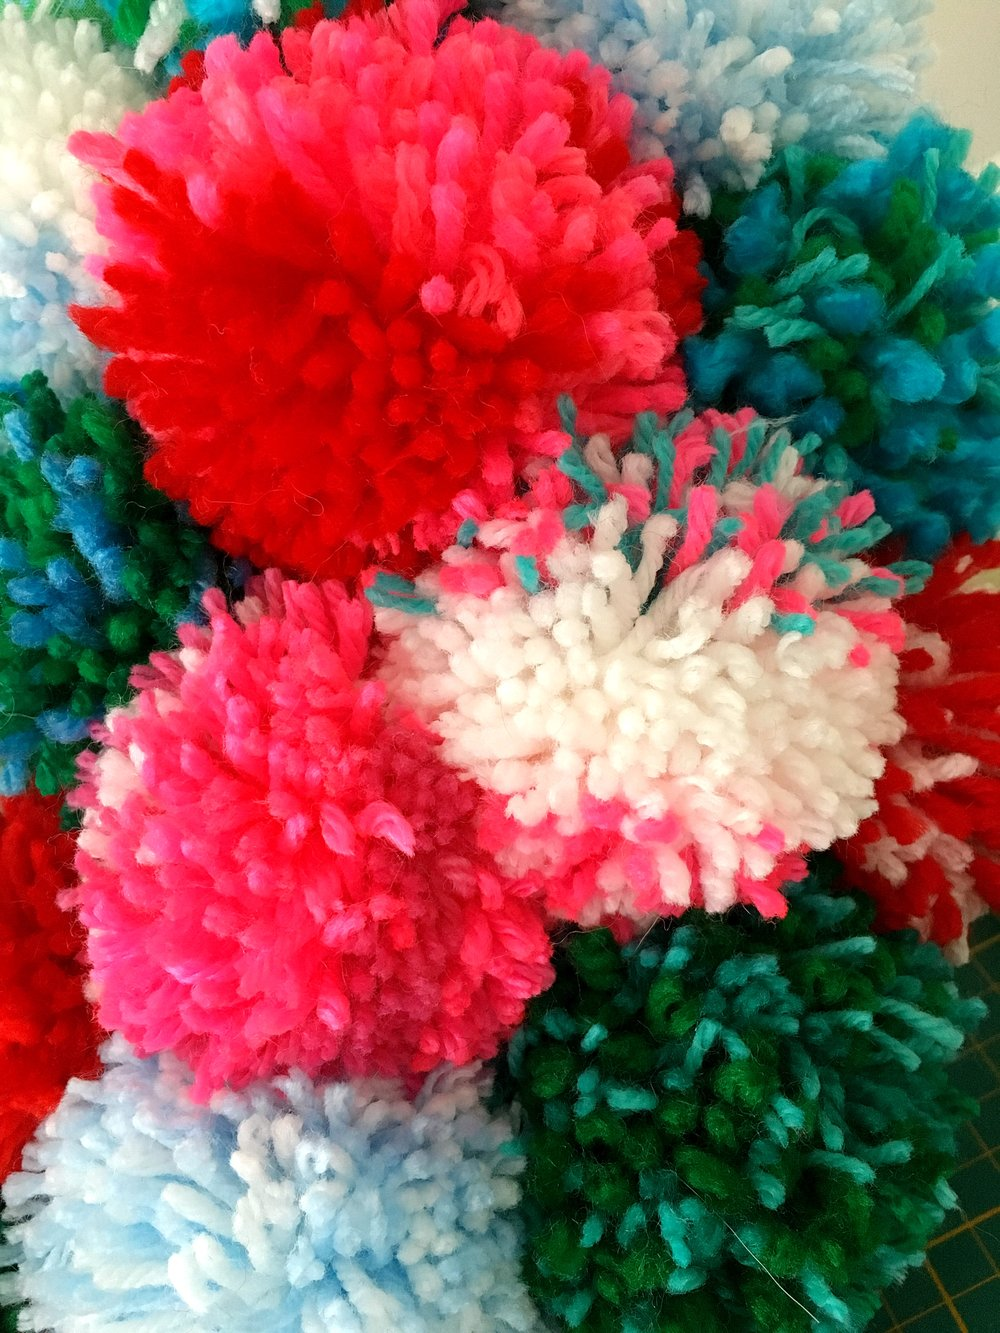 I ordered a Pom Maker tool and went a little overboard on making pom poms this Christmas!